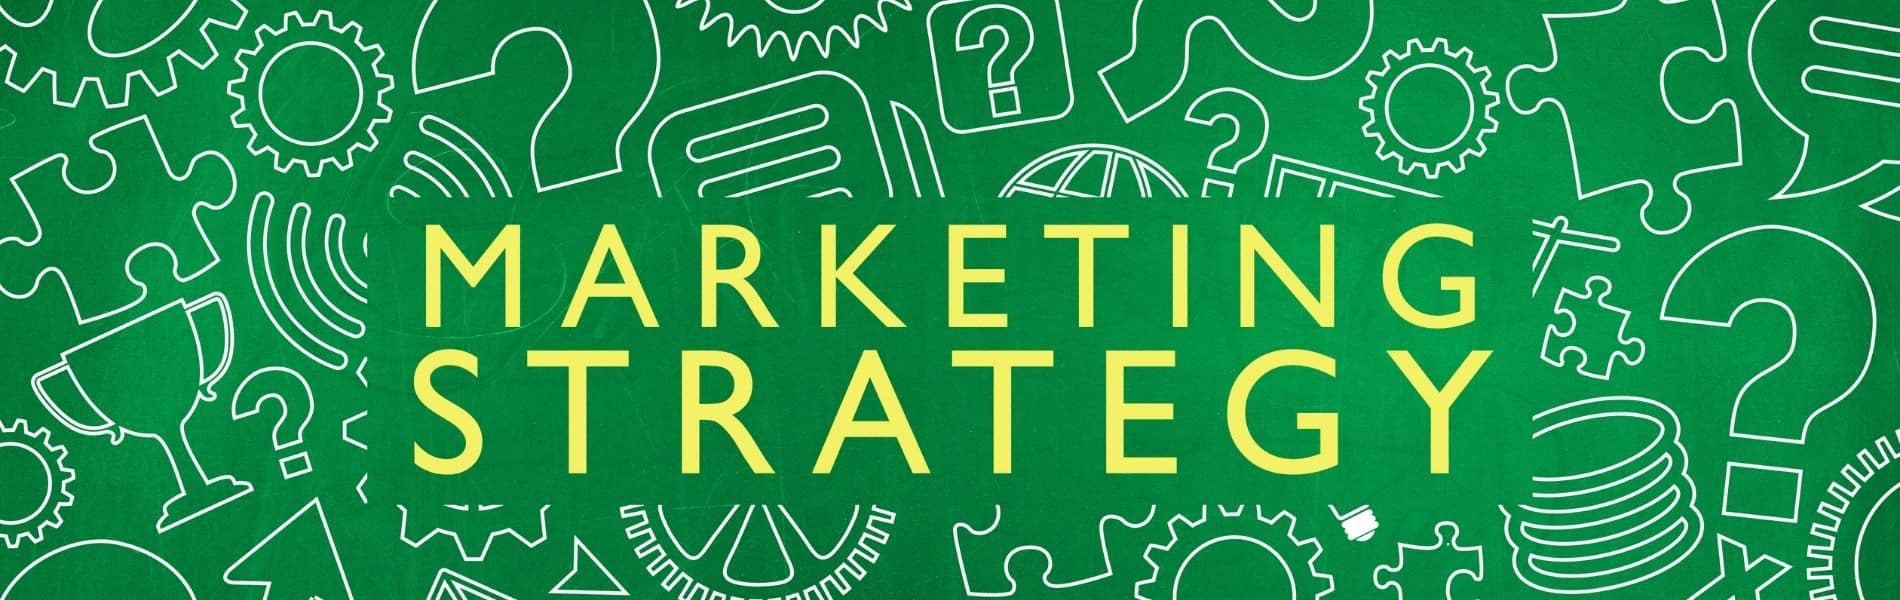 marketing strategies 2021